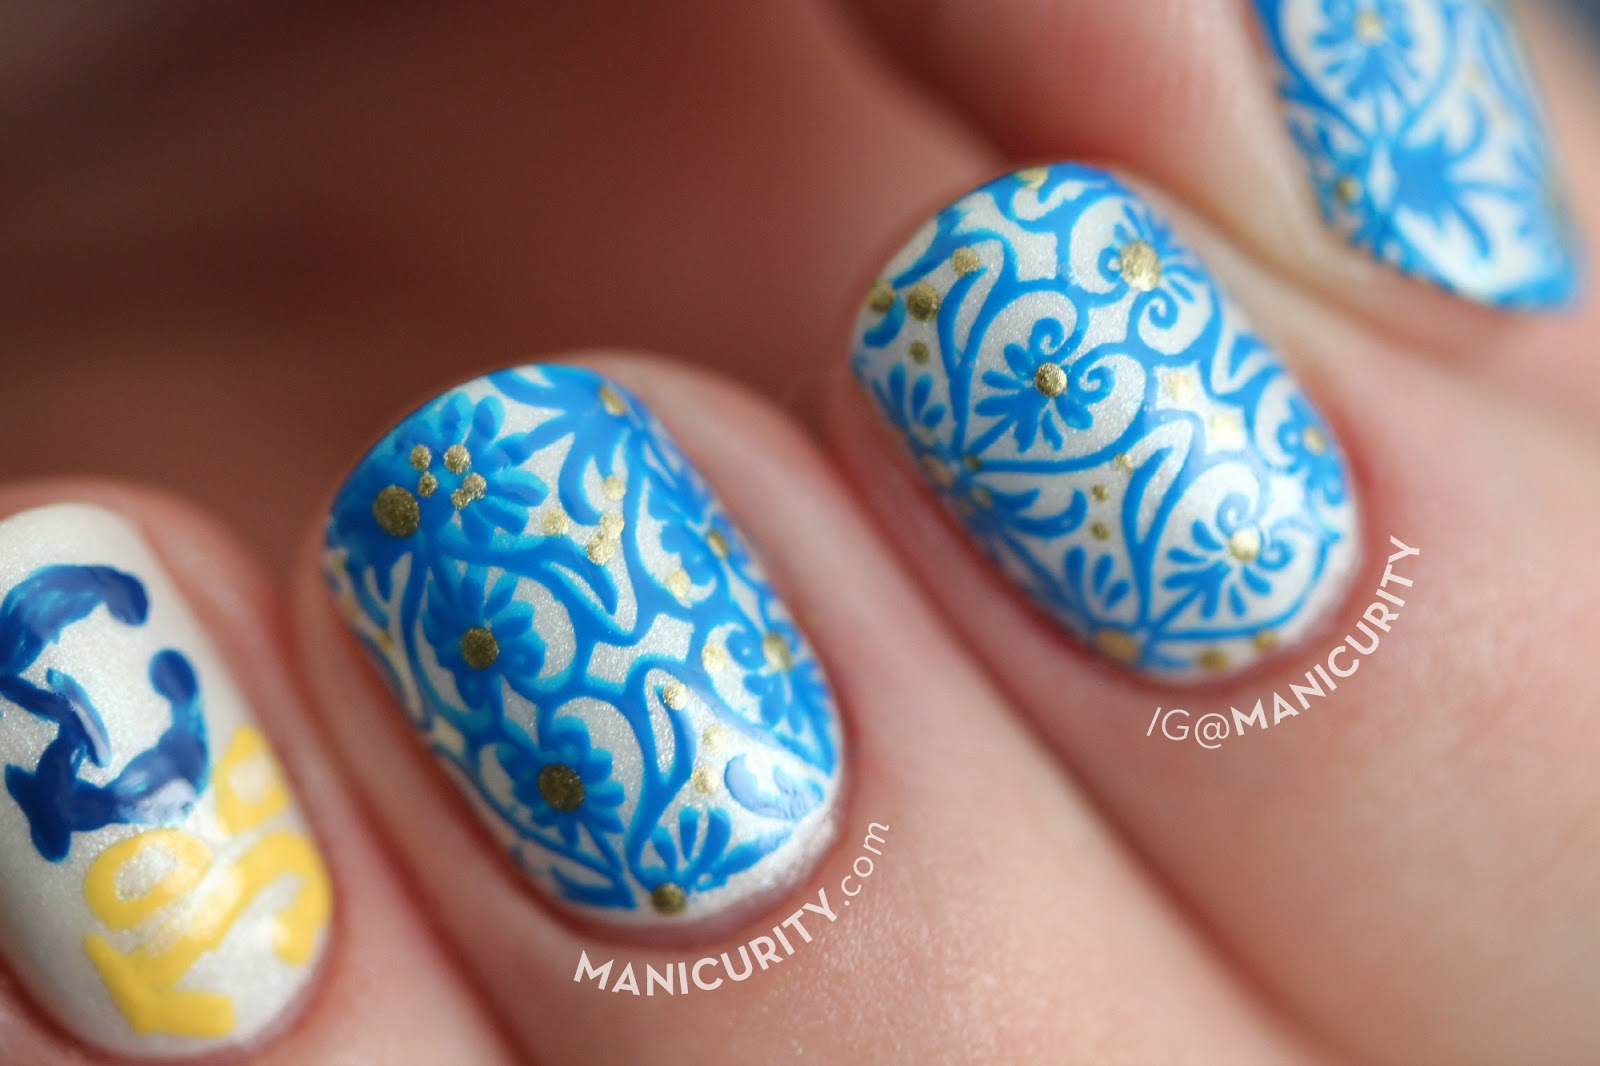 The Digit-al Dozen does Brands: 100 Montaditos stamping and freehand nail art | Manicurity.com